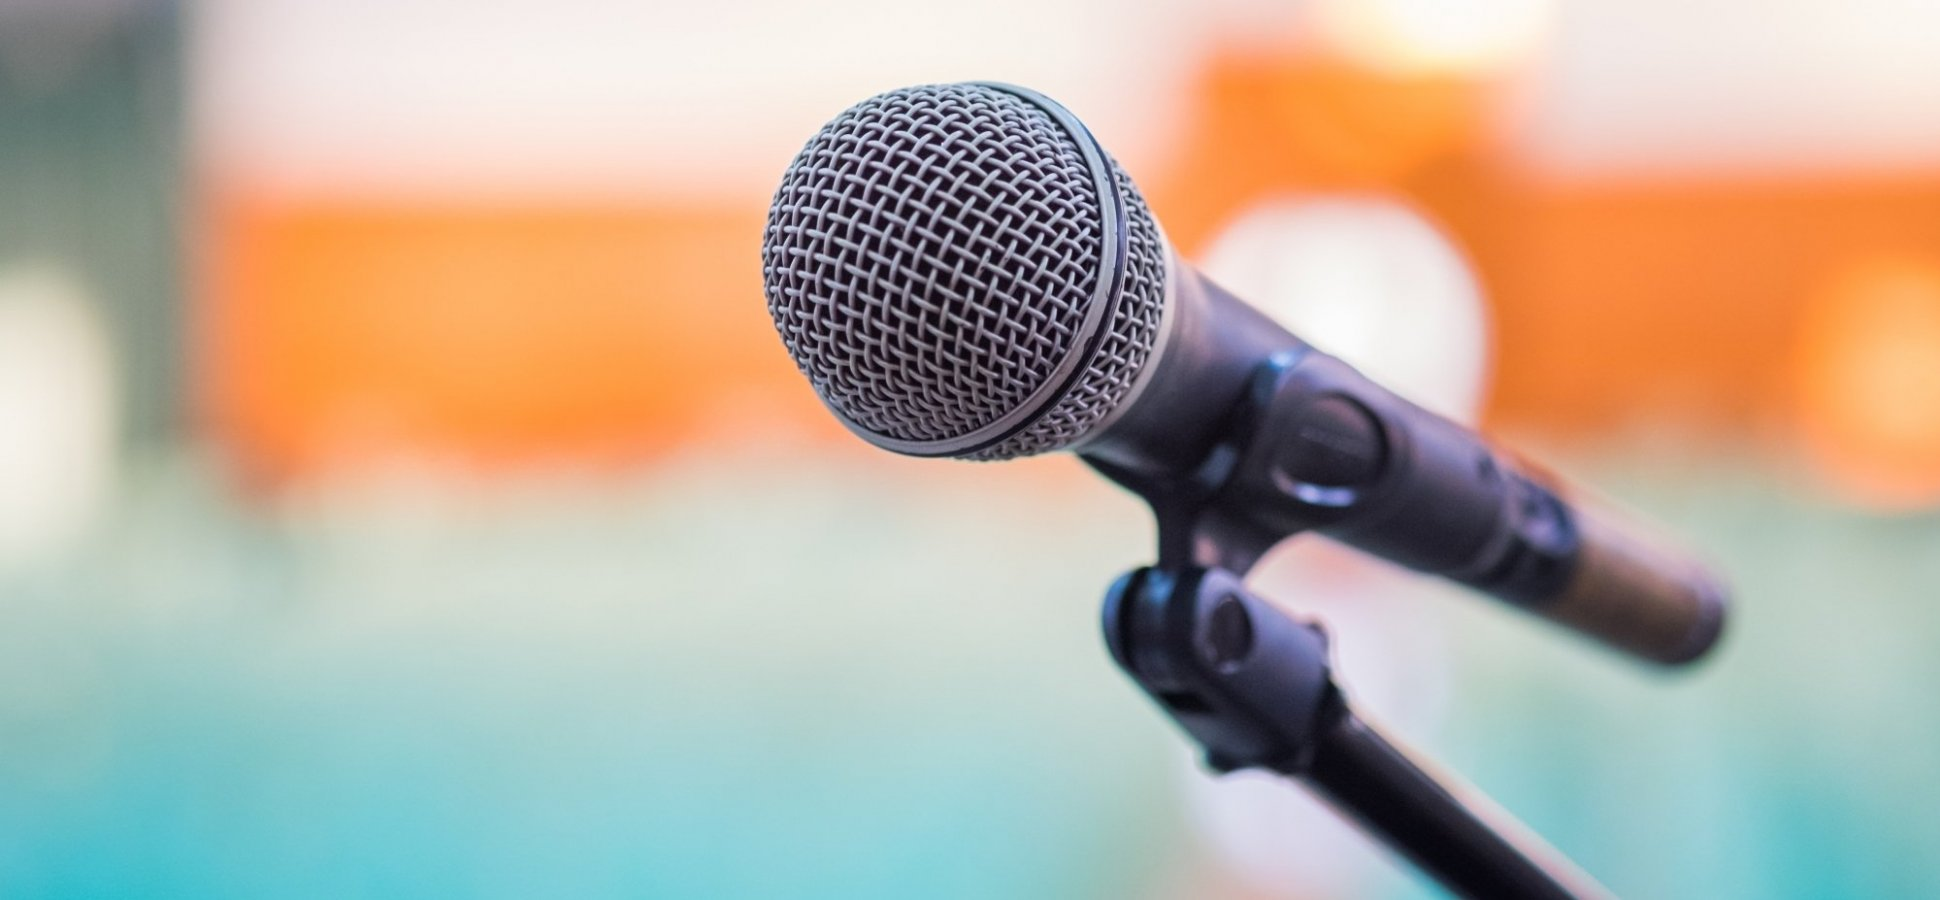 3 Ways to Get Over Your Fear of Public Speaking